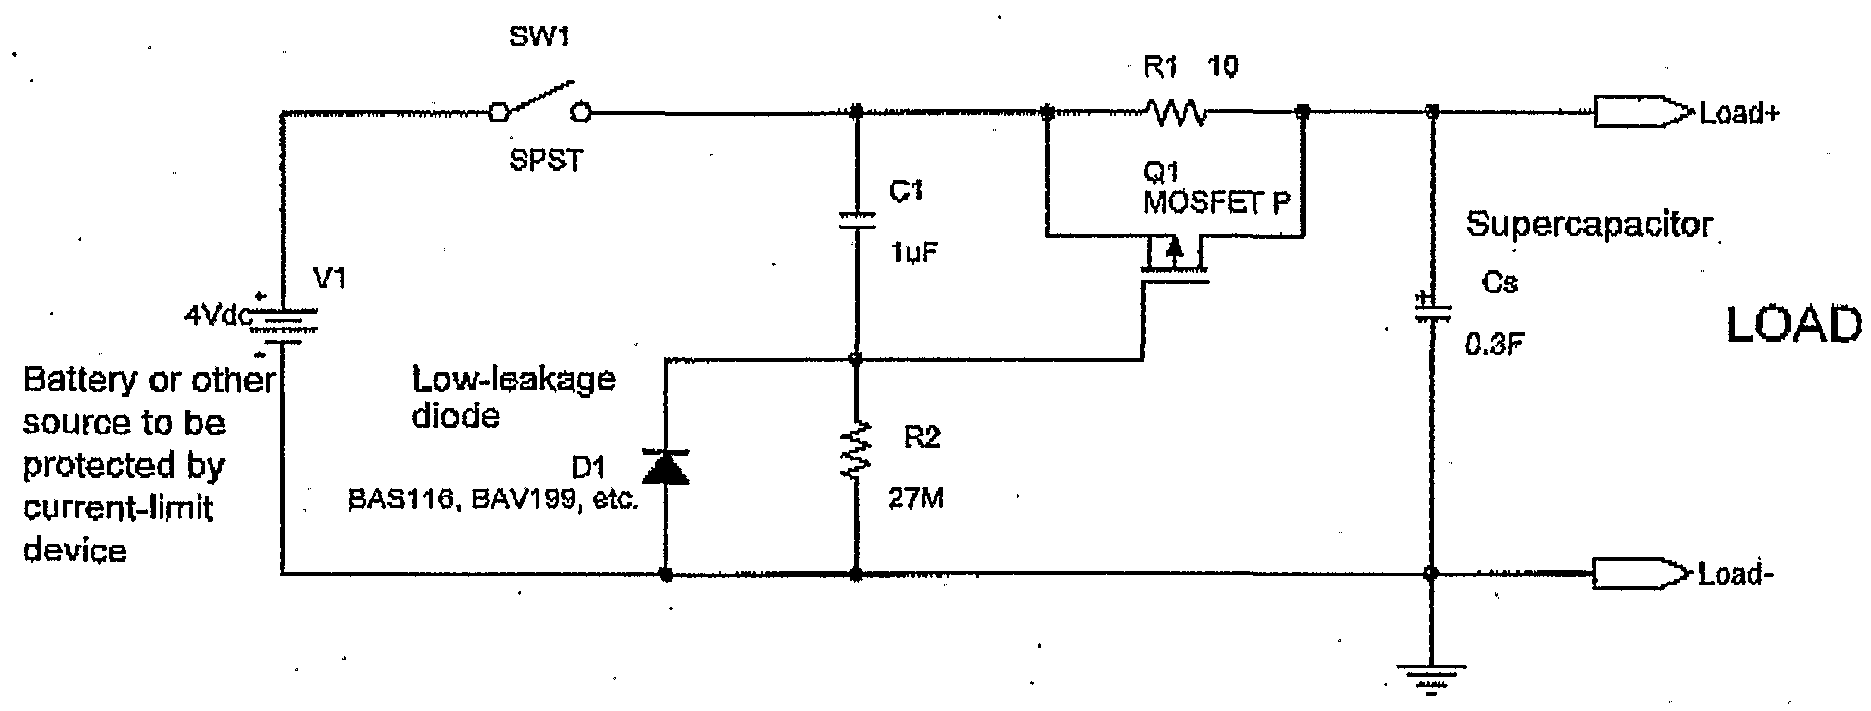 wo2004023637a1 a power supply google patents